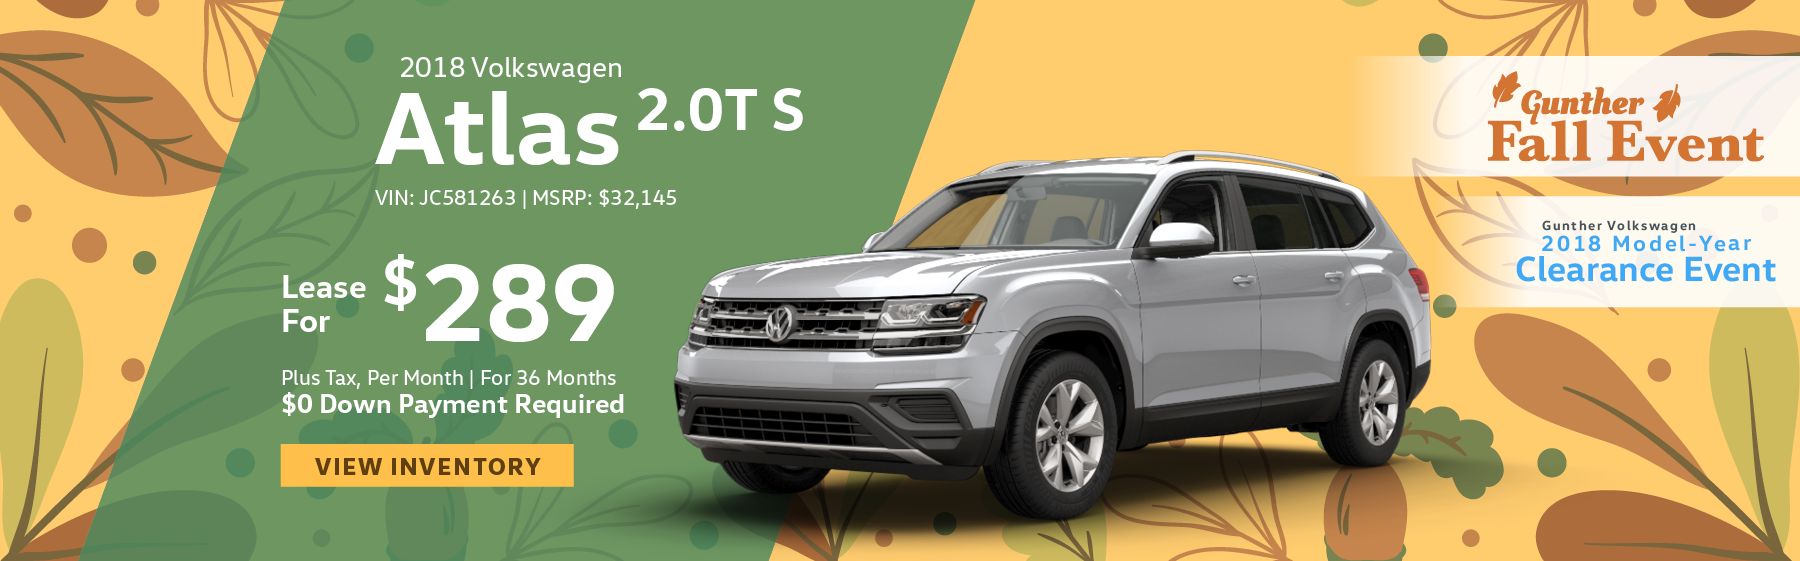 Lease the 2018 Volkswagen Atlas 3.6L V6 S for $289 per month, plus tax for 36 months. Click here to view inventory.